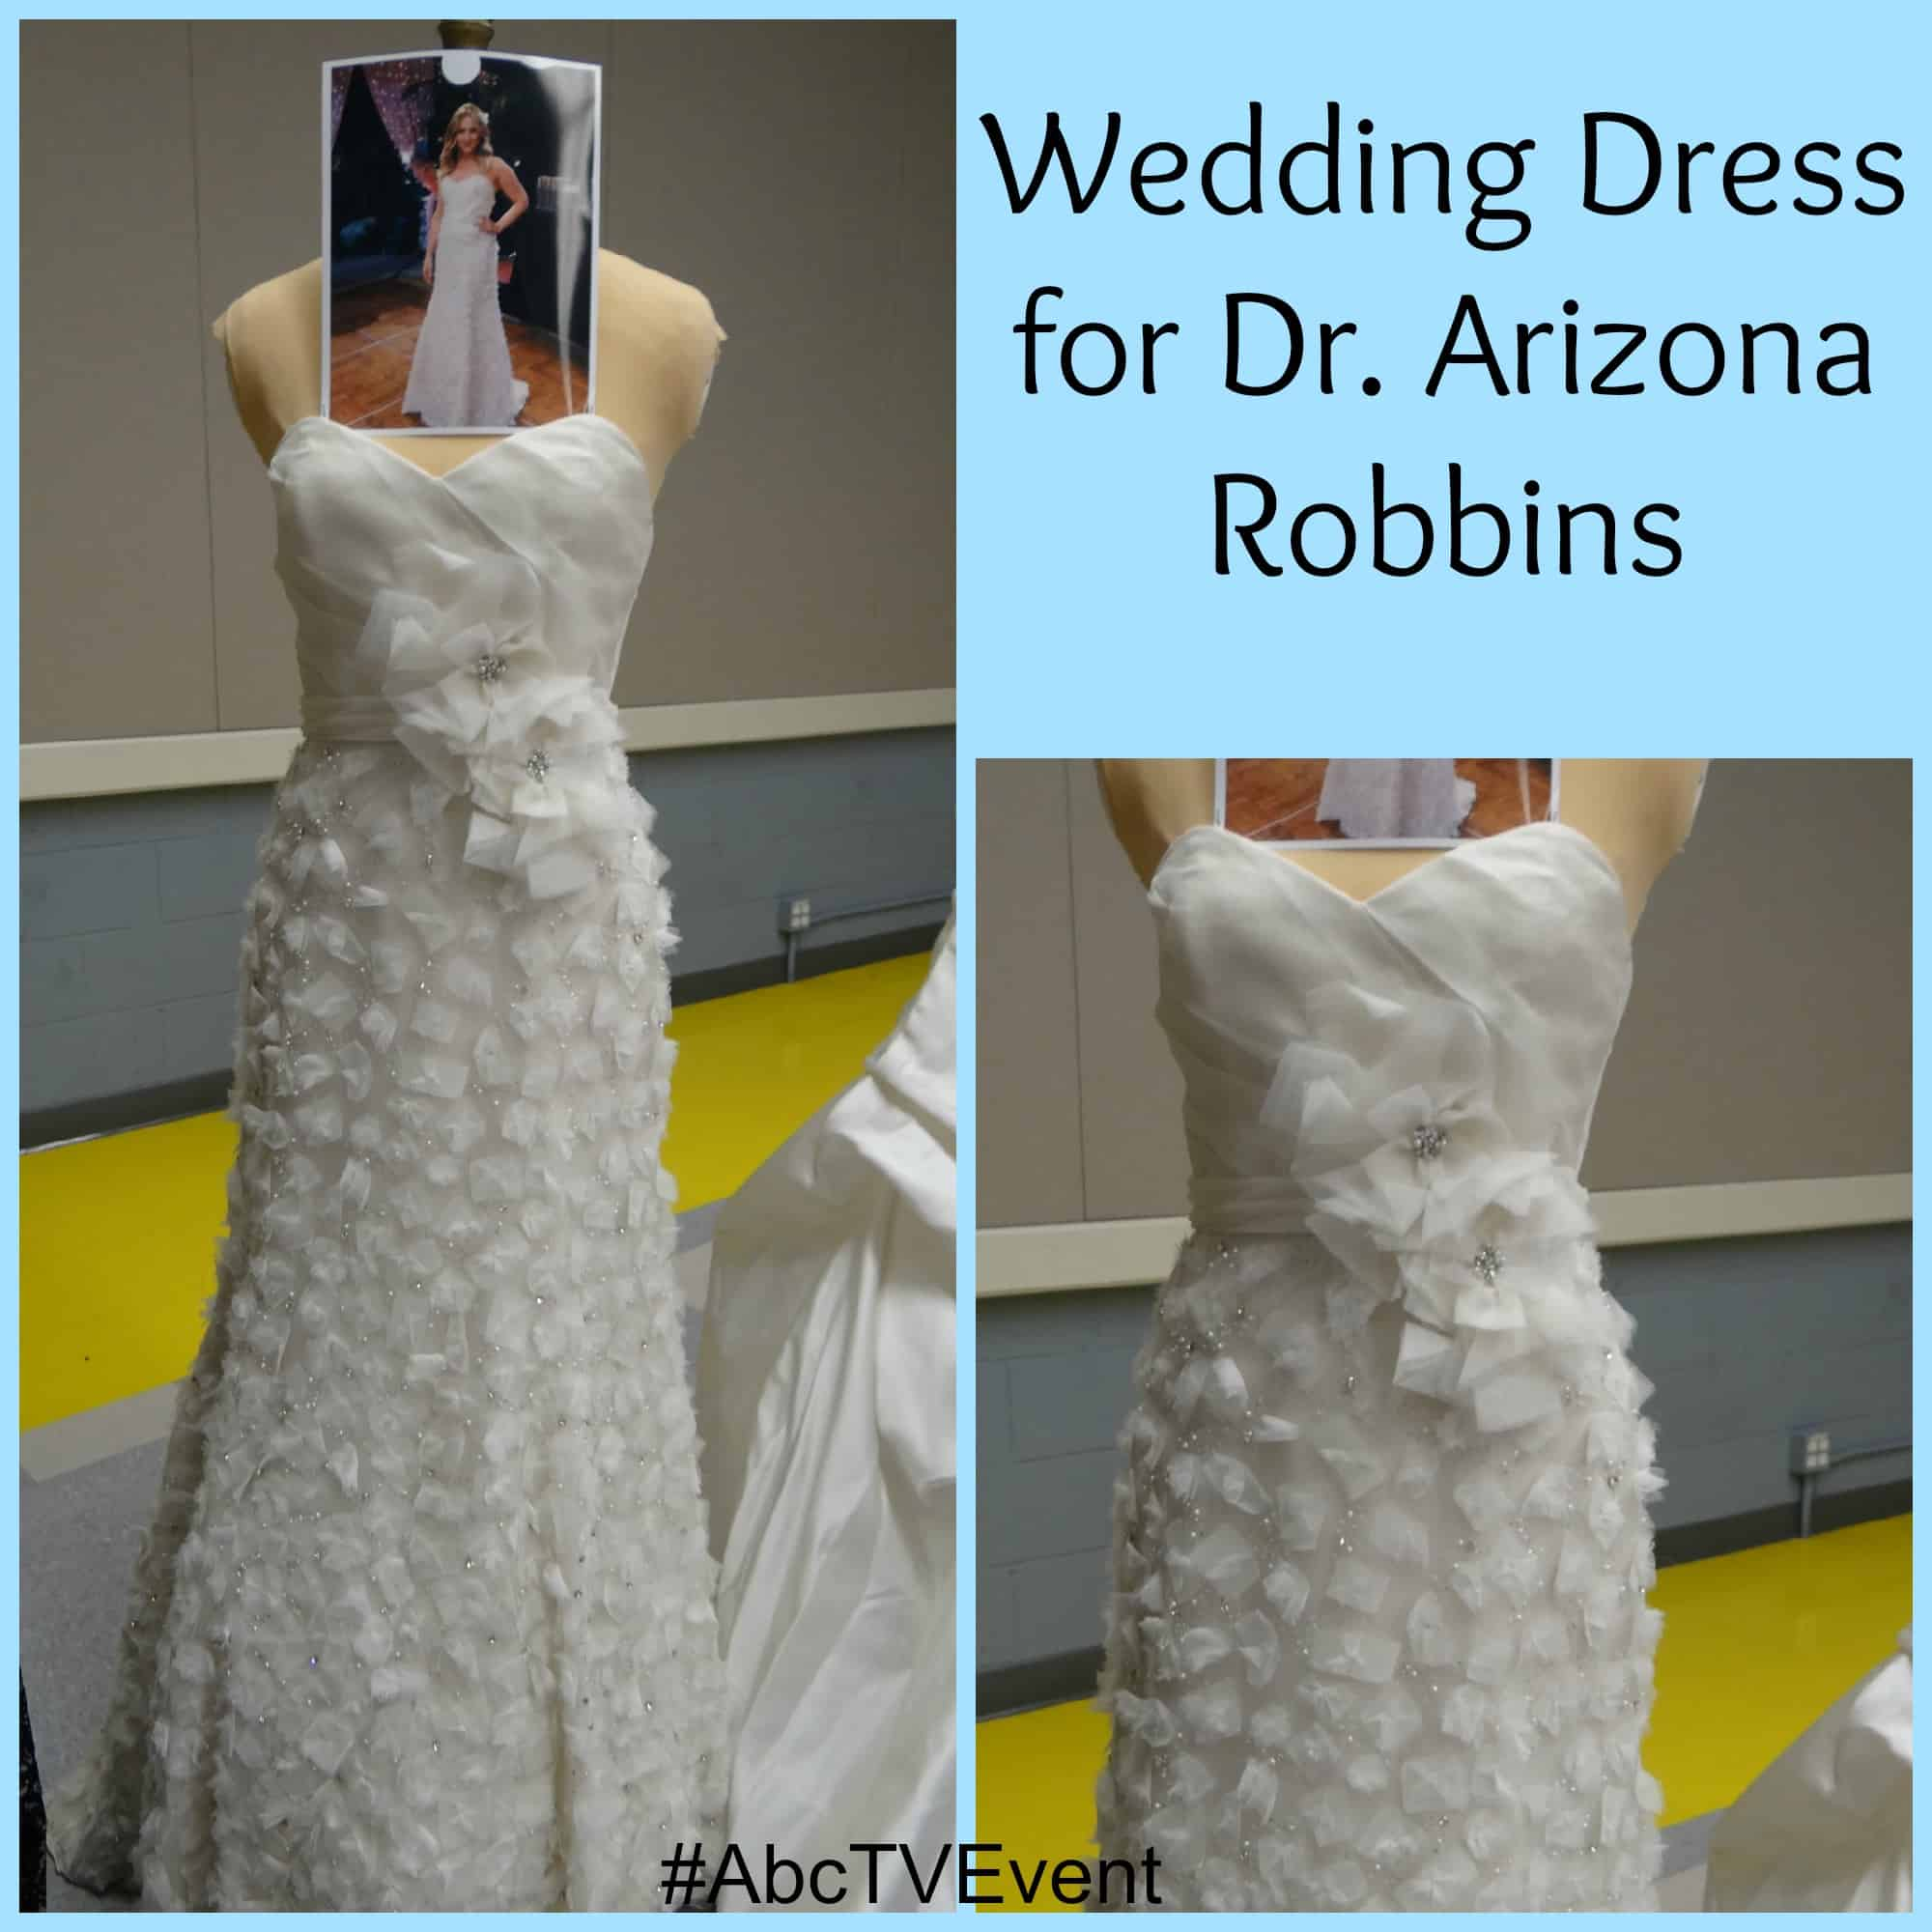 Grey's Tour - Costume - Arizona's Wedding Dress